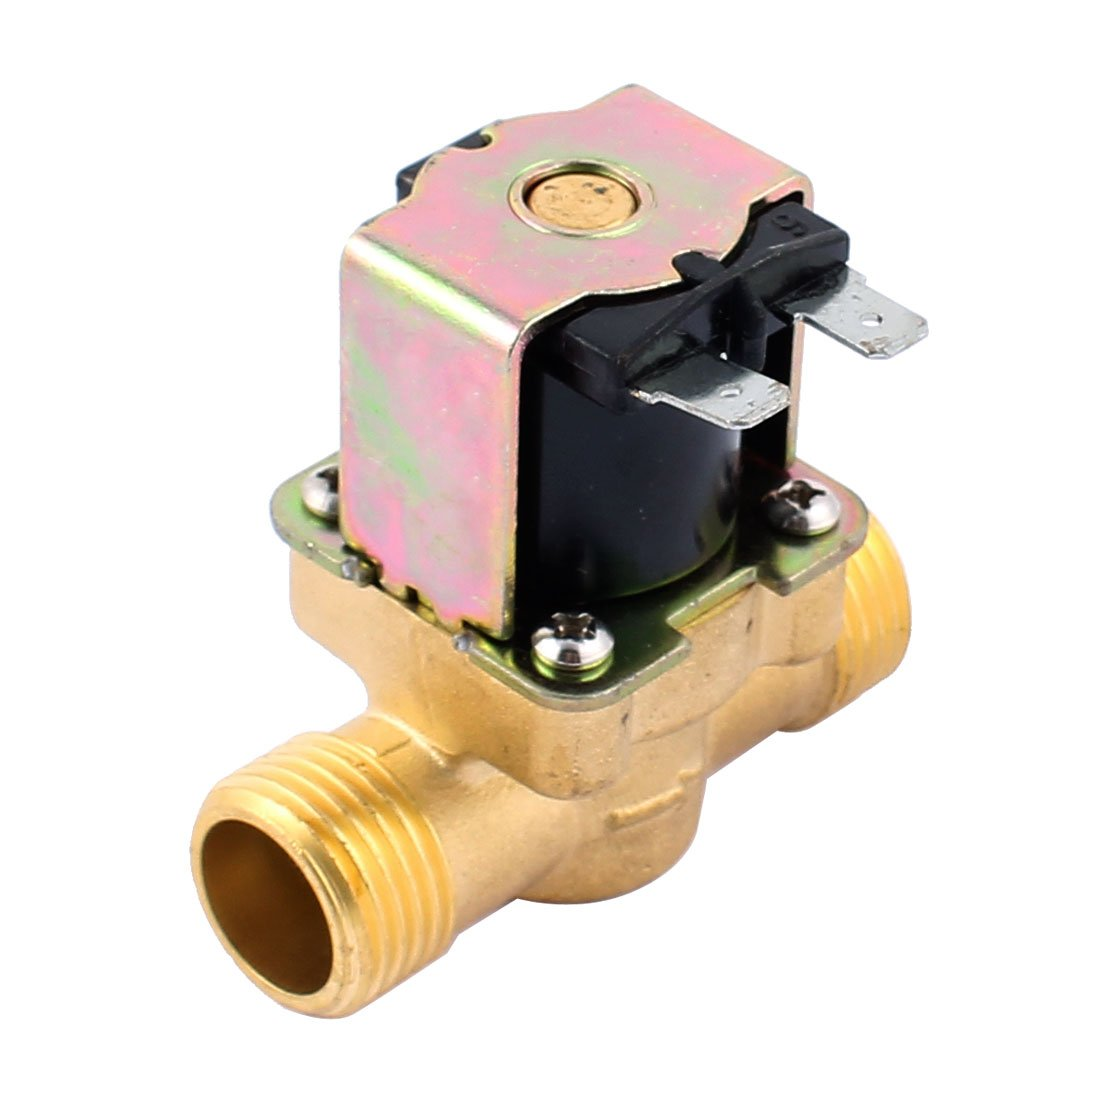 """uxcell G1/2"""" Male High-Temperature 120C Water Brass Electromagnetic Solenoid Valve 3-25L/M 12V 120C"""